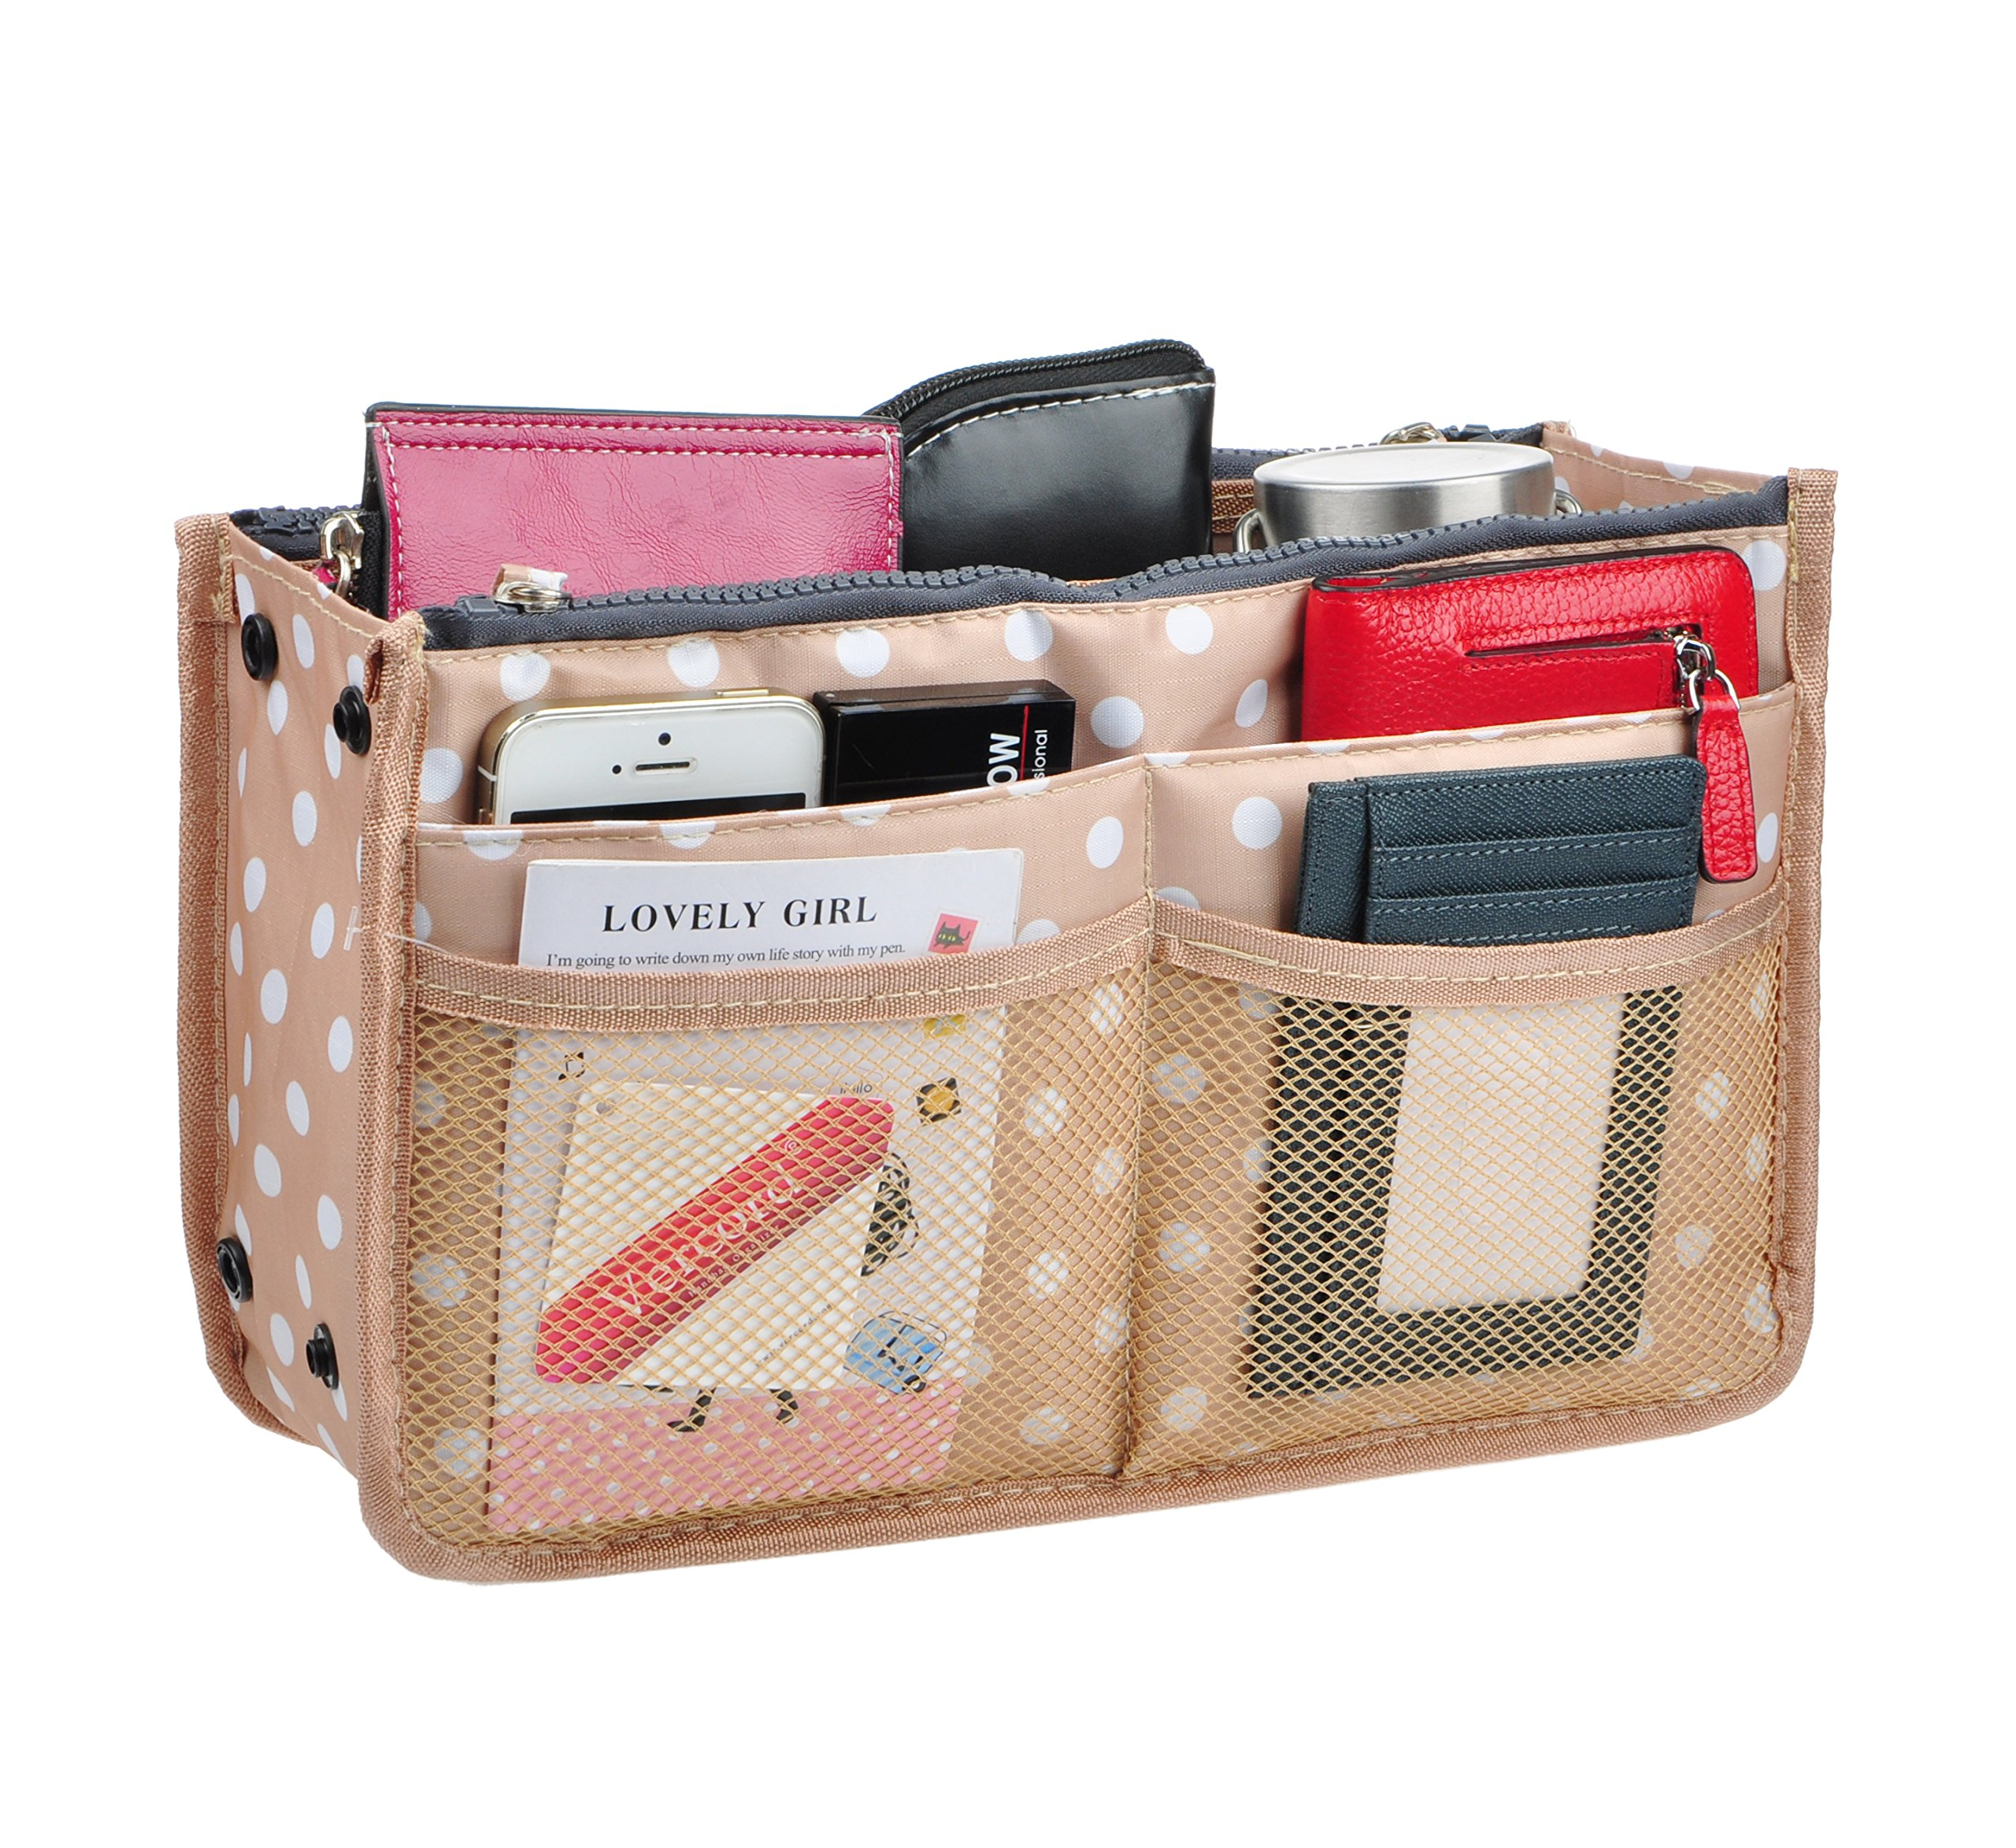 Vercord Updated Purse Handbag Organizer Insert Liner Bag in Bag 13 Pockets 3 Size, Beige Dot M